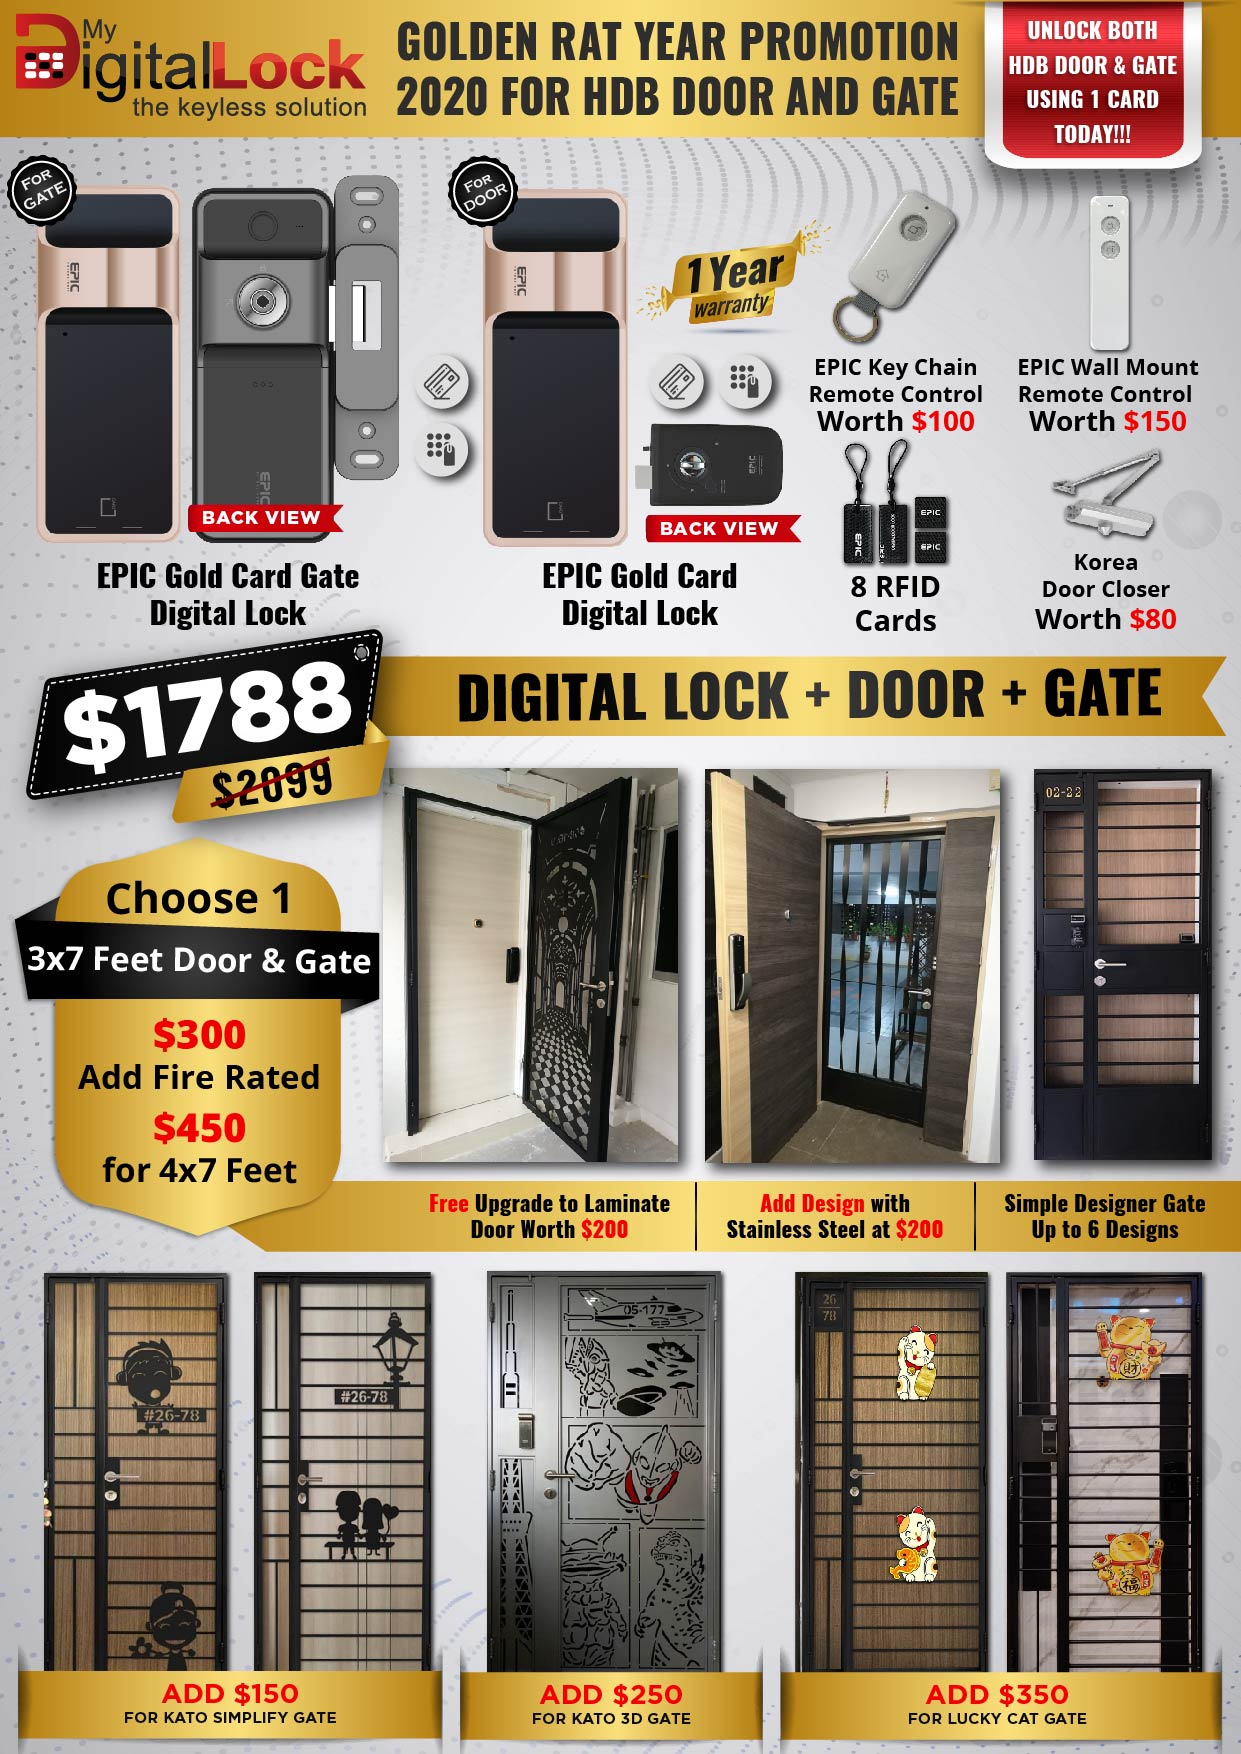 Golden Rat Year HDB Door and Gate Promotion with EPIC 5G Gate Digital Lock